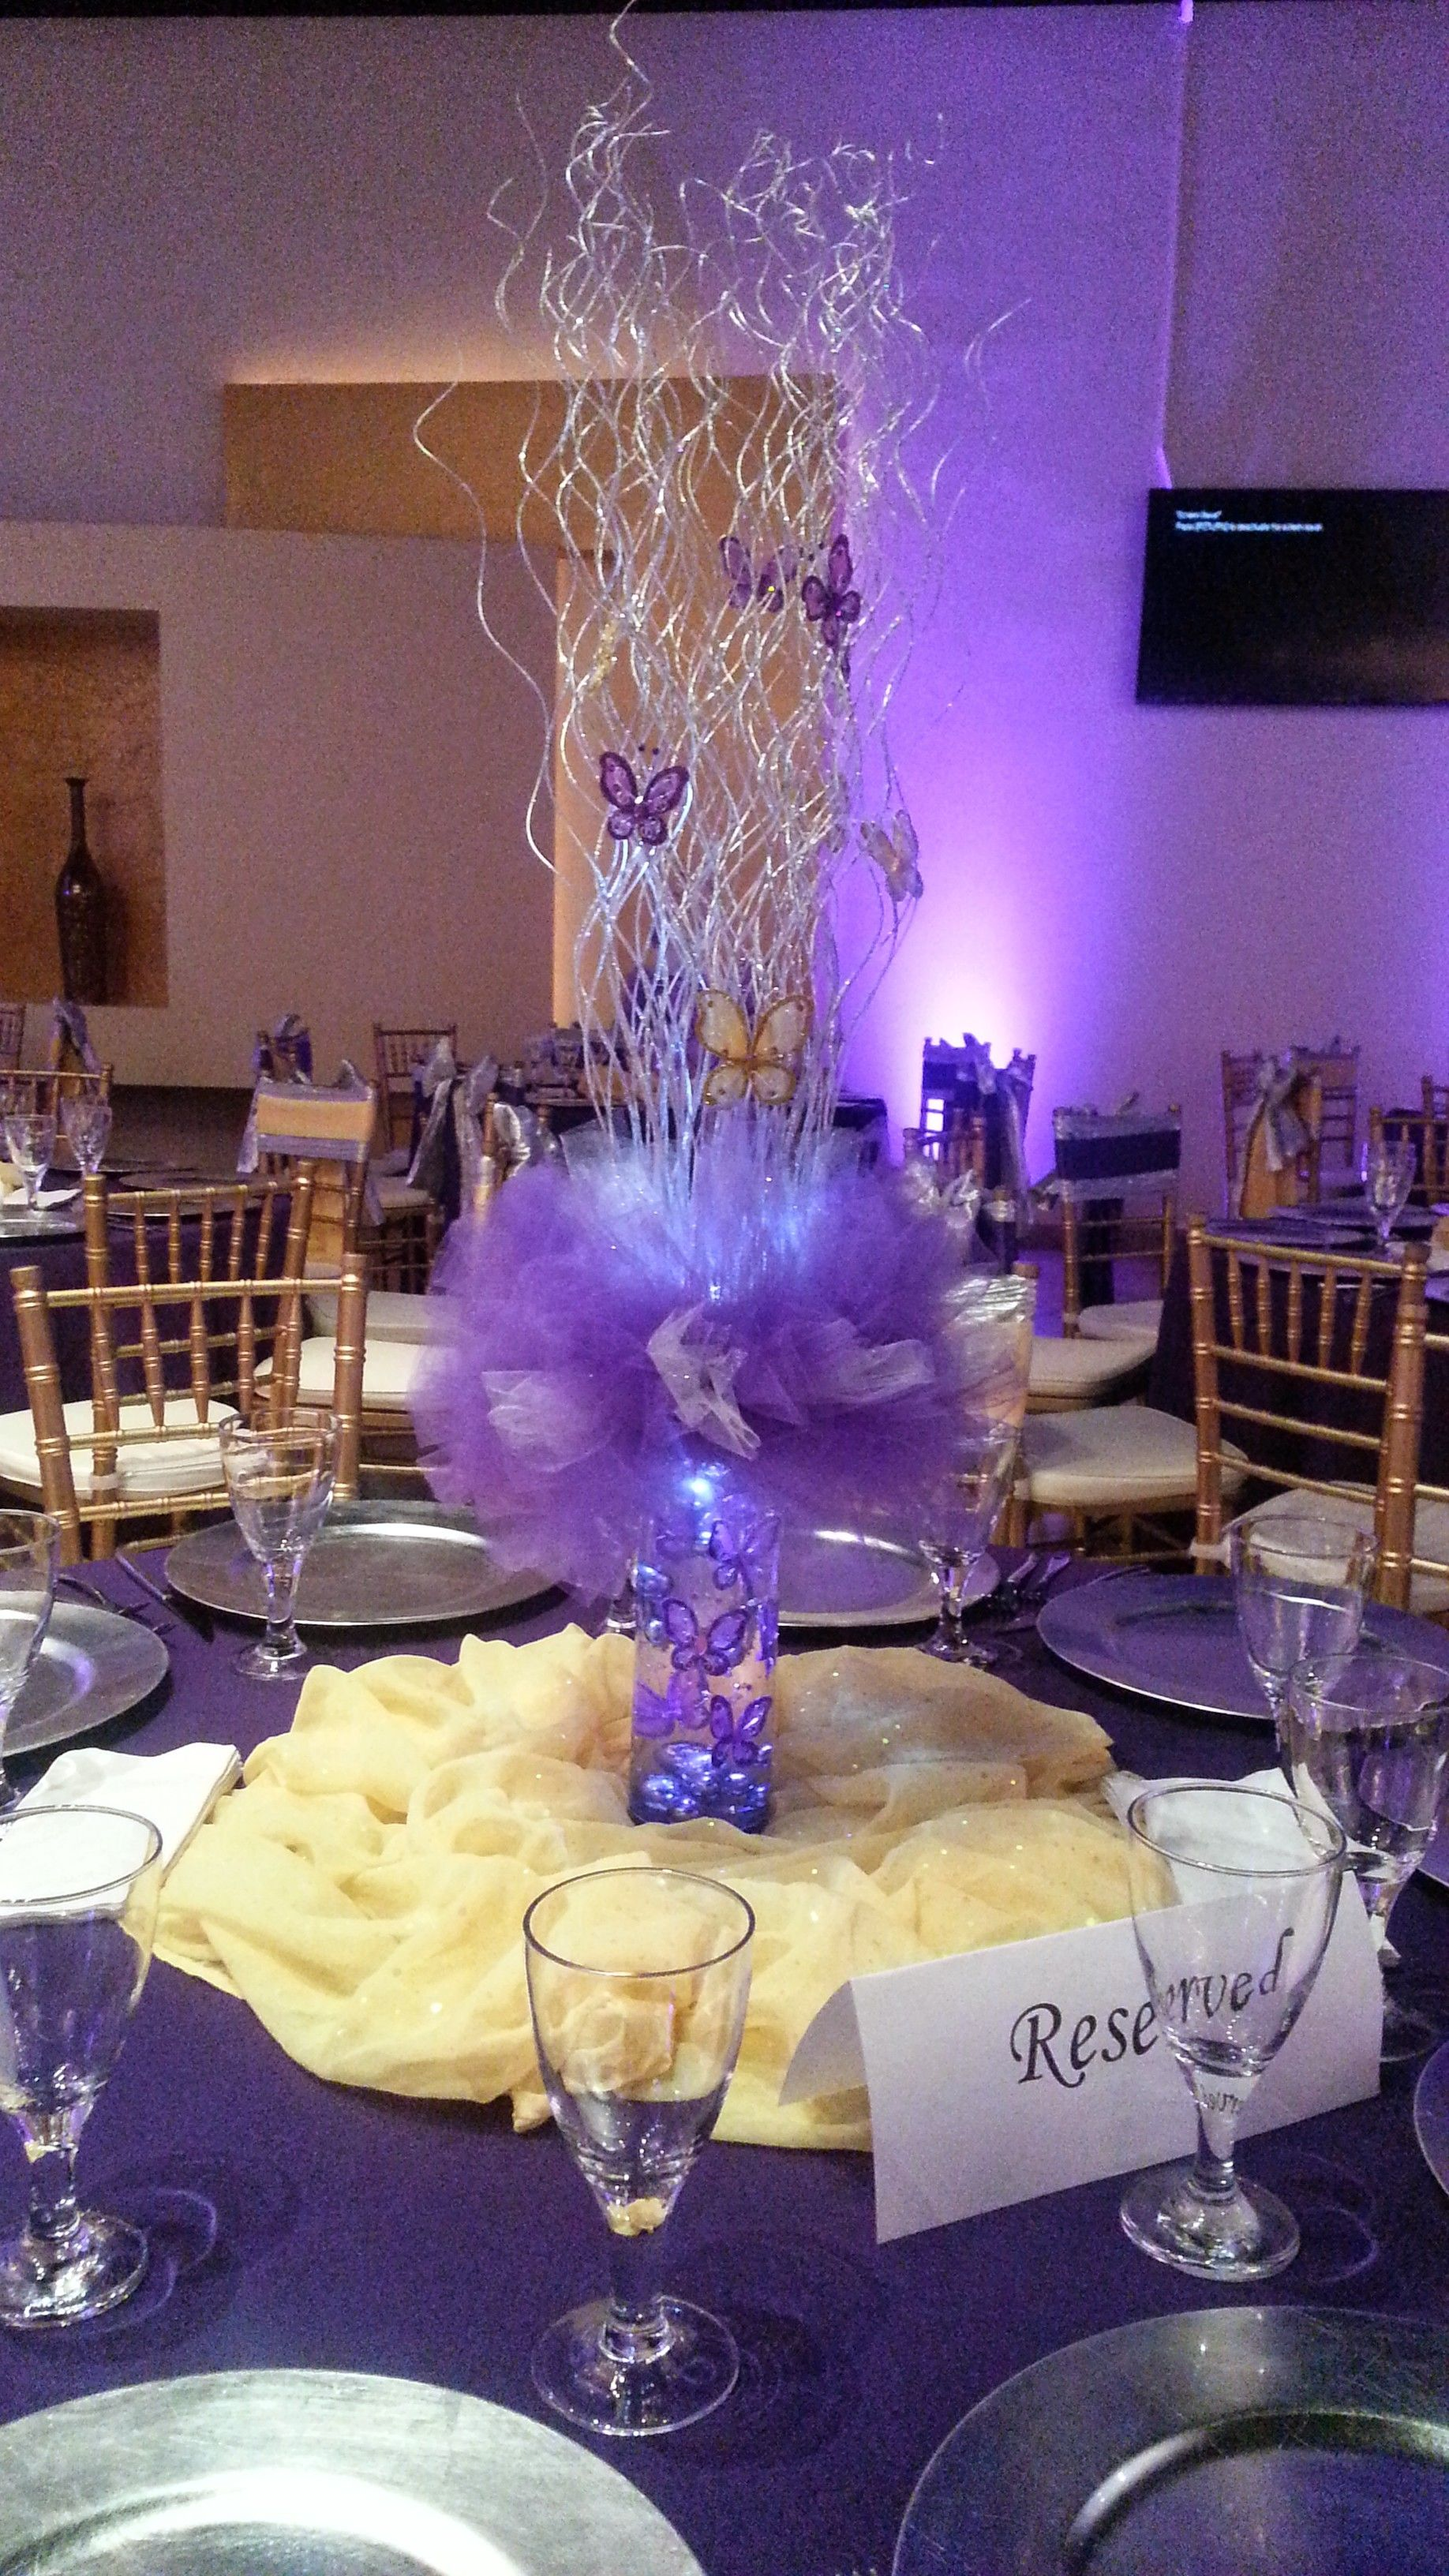 Niece s quinceanera small centerpiece using purple tulle